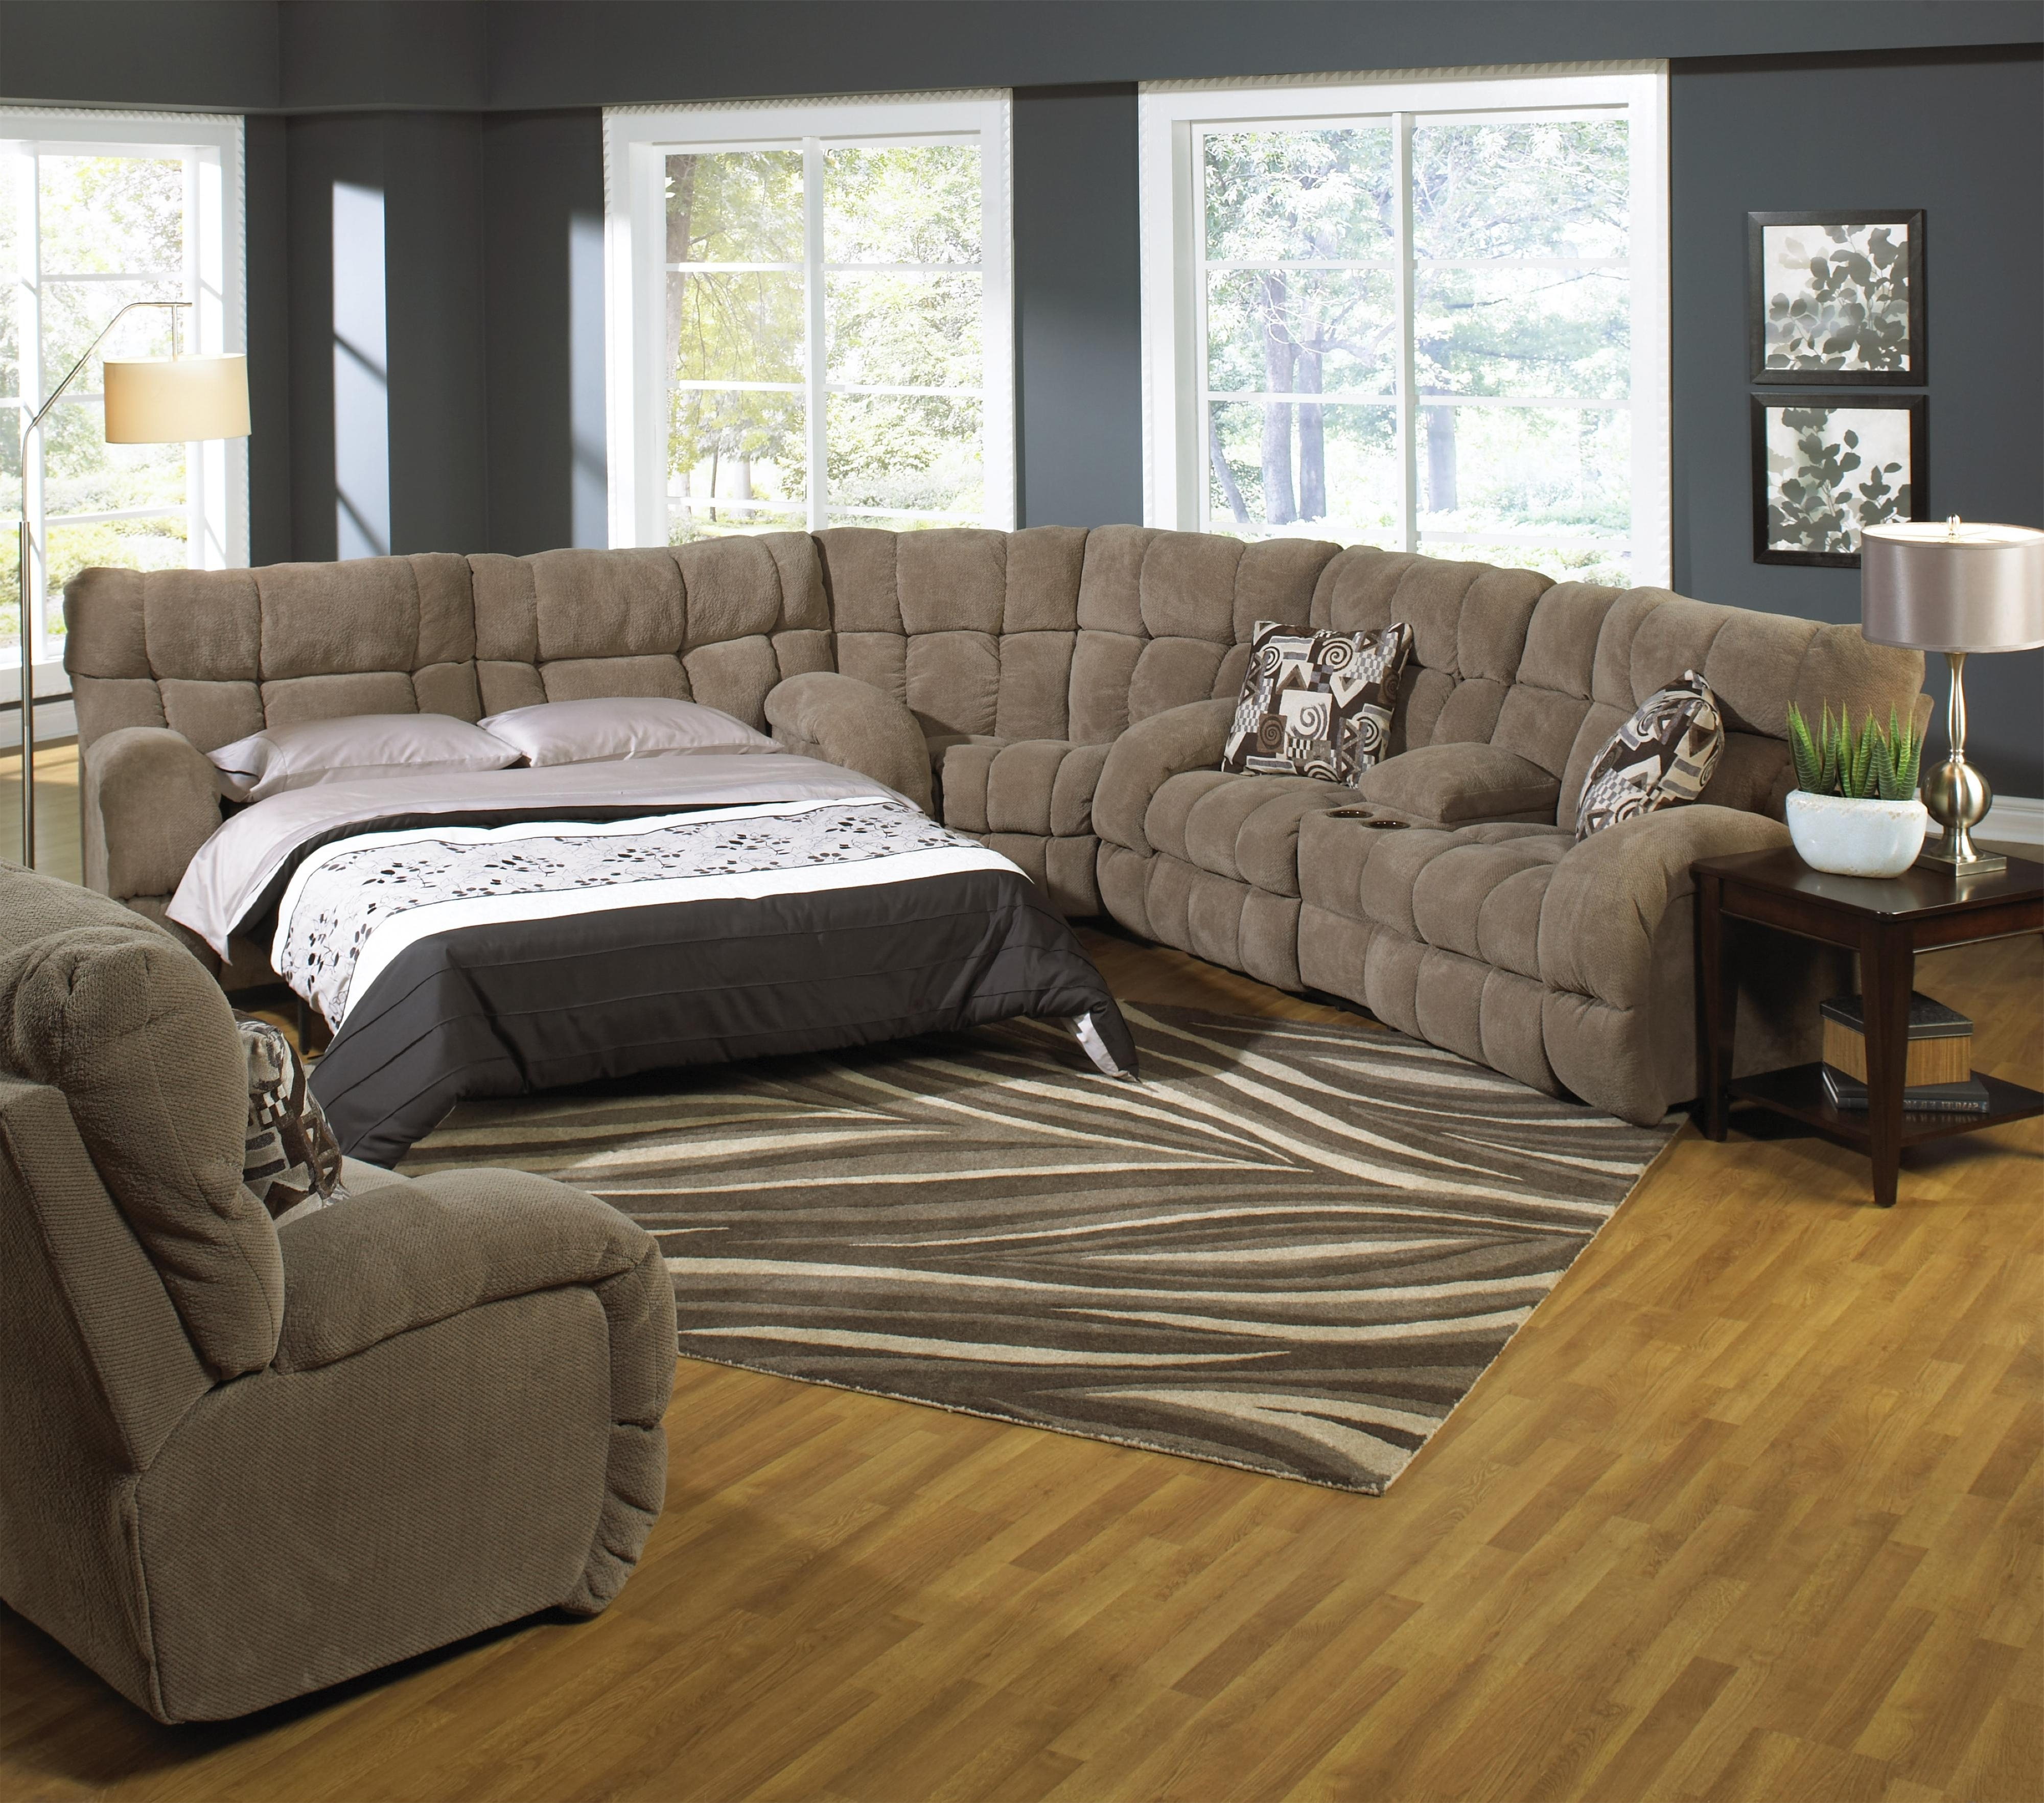 Wolf And Regarding Reclining Sectional Sofas (View 11 of 15)